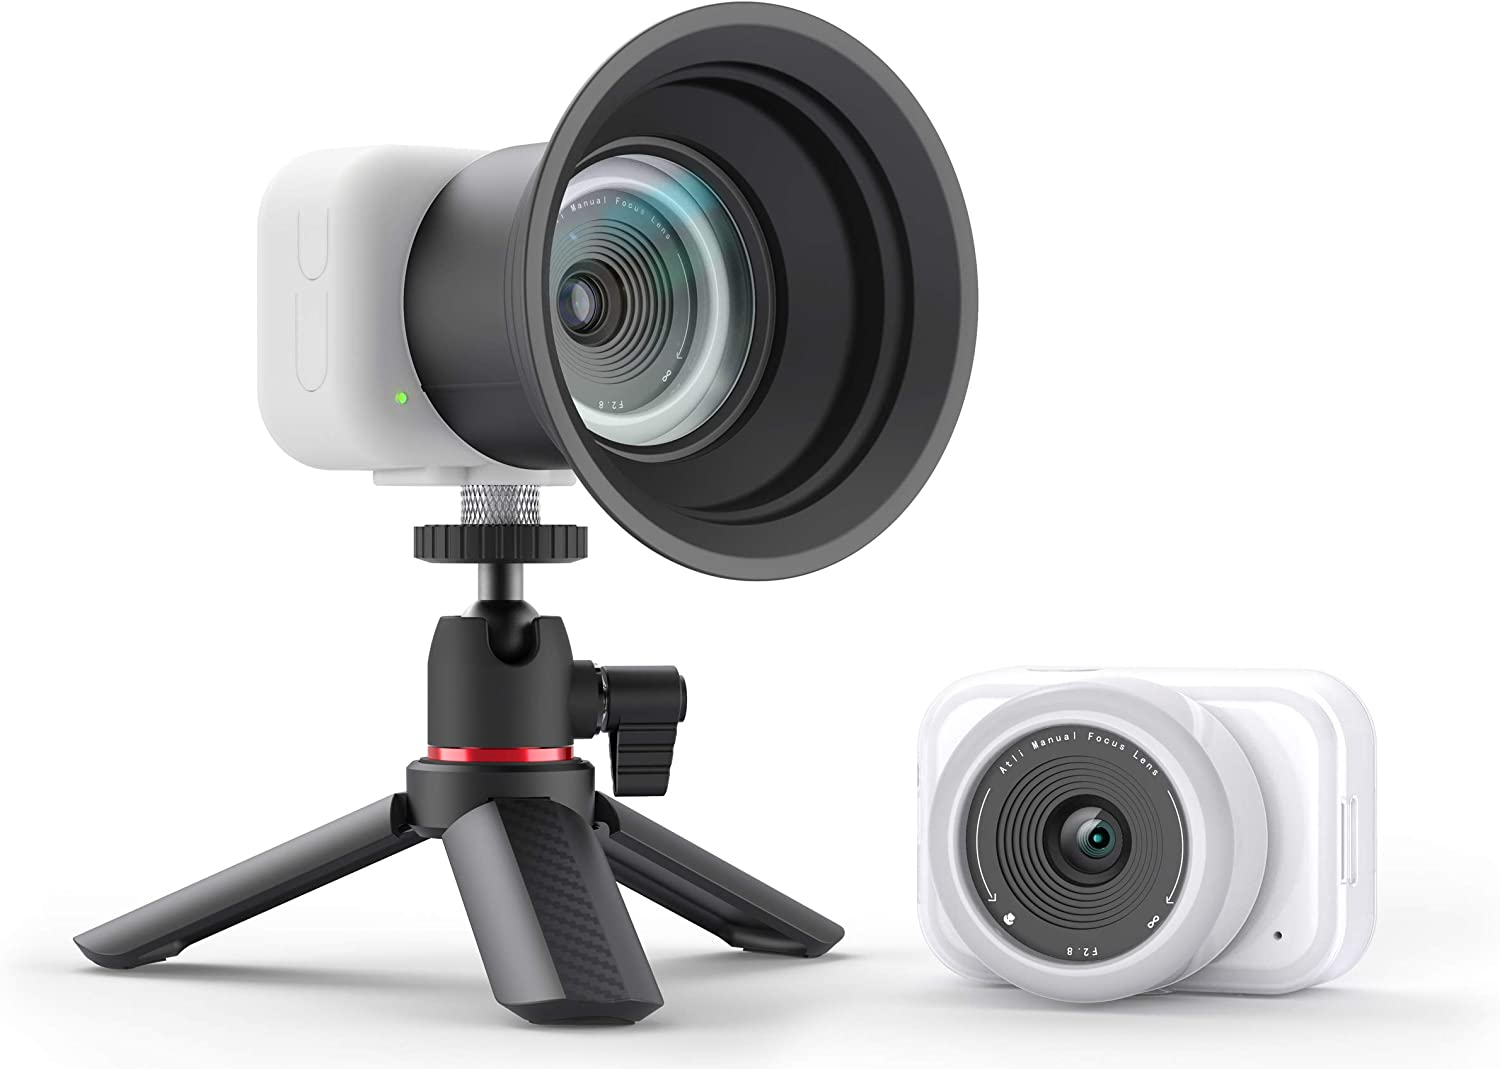 aTLi EON Time-Lapse Video Camera, Full HD Vlogging, Ideal for capturing Nature, Arts Creation, Baby & Pets, Construction, Infrared Photography, w/Protective Accessories iOS App Control (White)